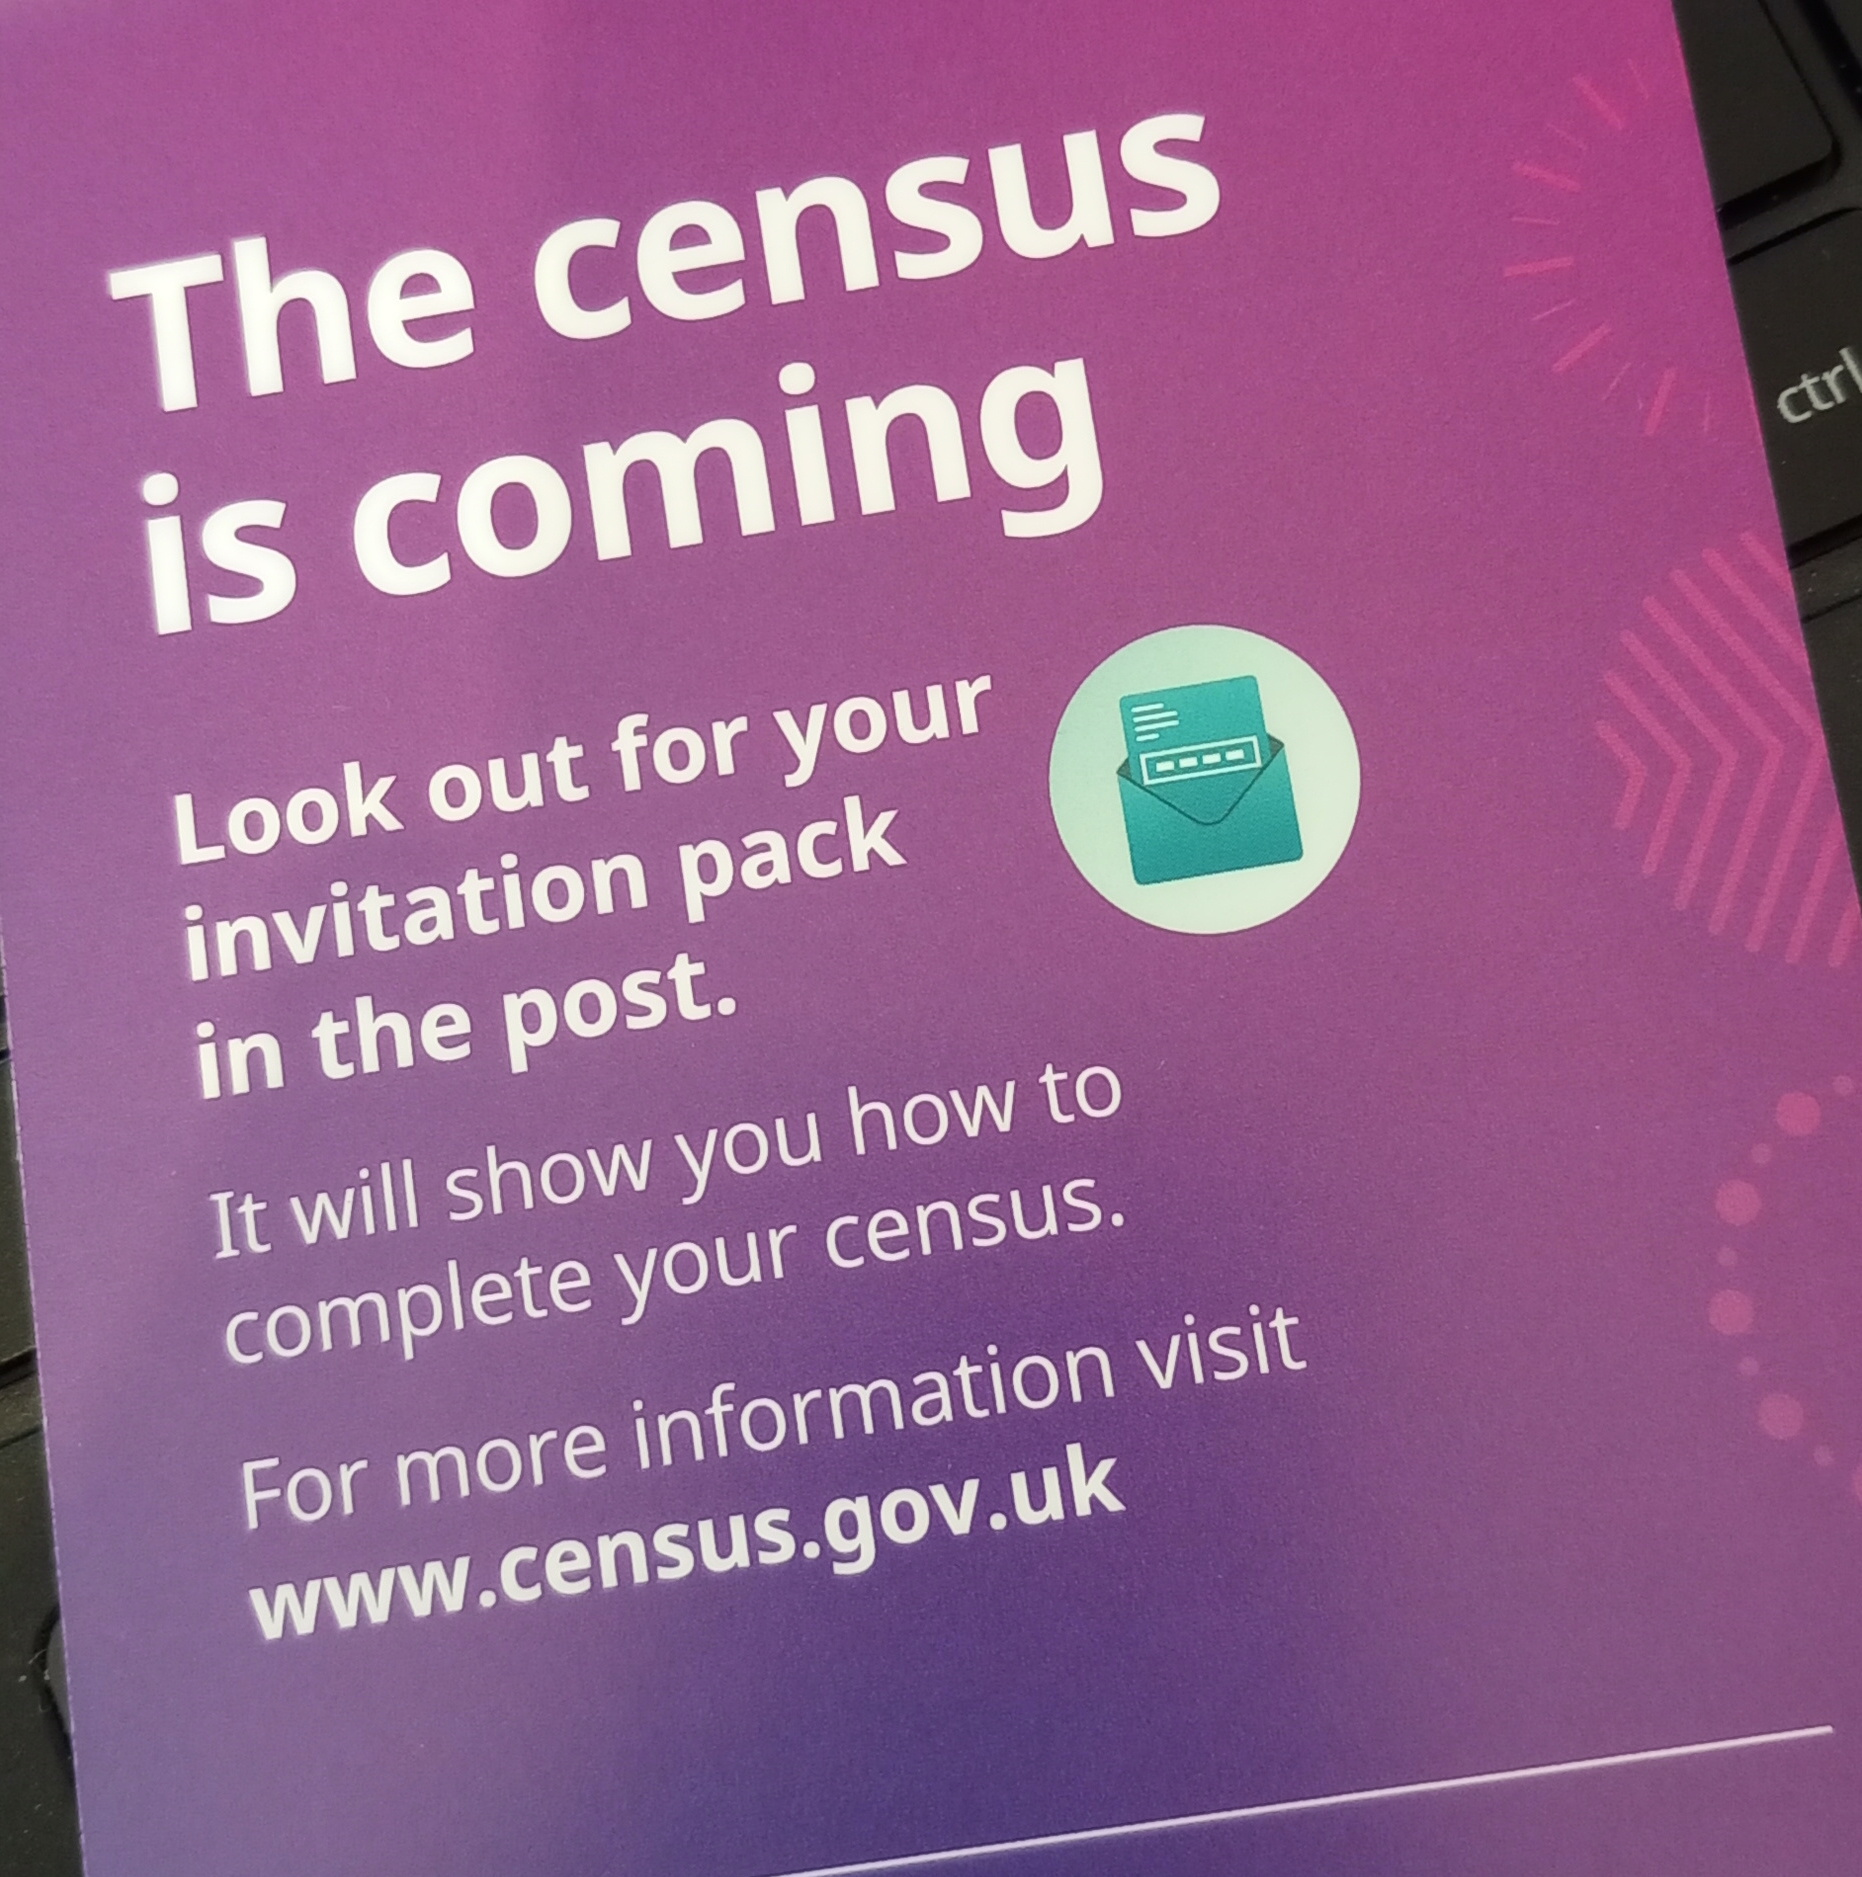 Census 2021 is coming. Look out for your invitation